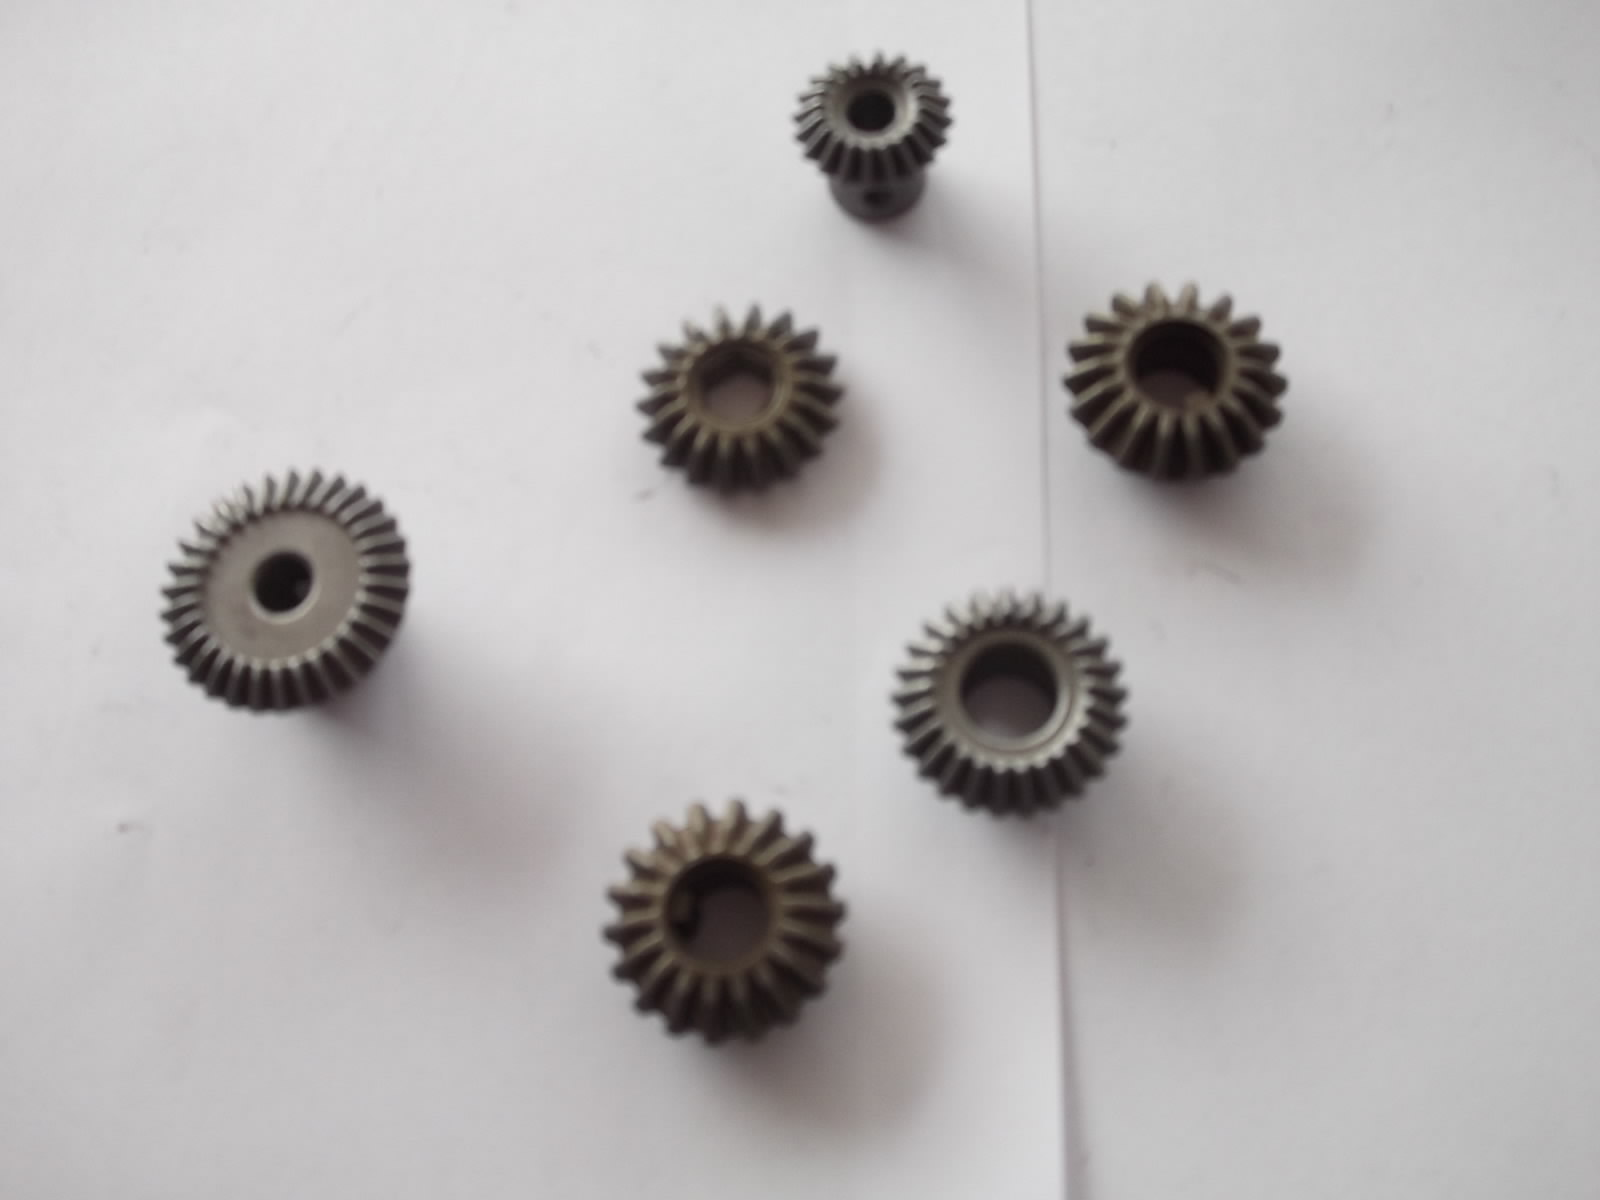 Dây curoa  Fabrication PM bevel gear bevel gear 15 teeth 16 teeth 18 teeth 20 teeth 25 tooth bevel